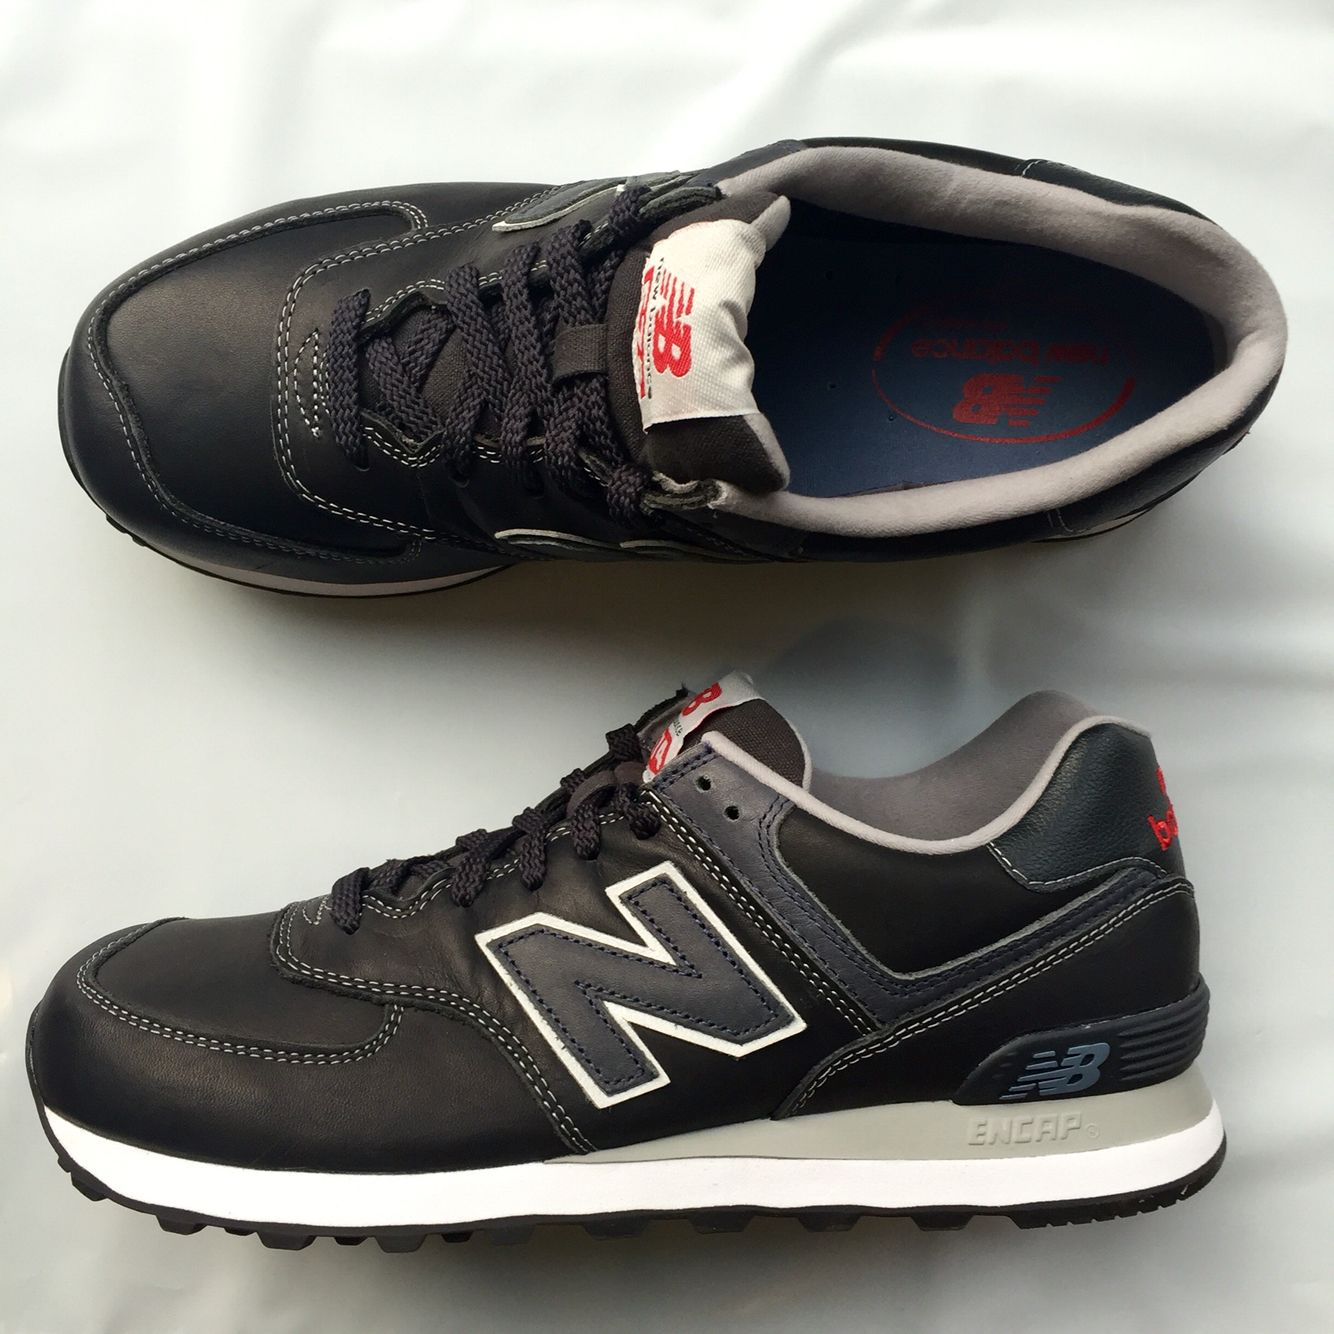 New Balance ML574LLN | Sneaker stores, New balance sneakers, Sneakers